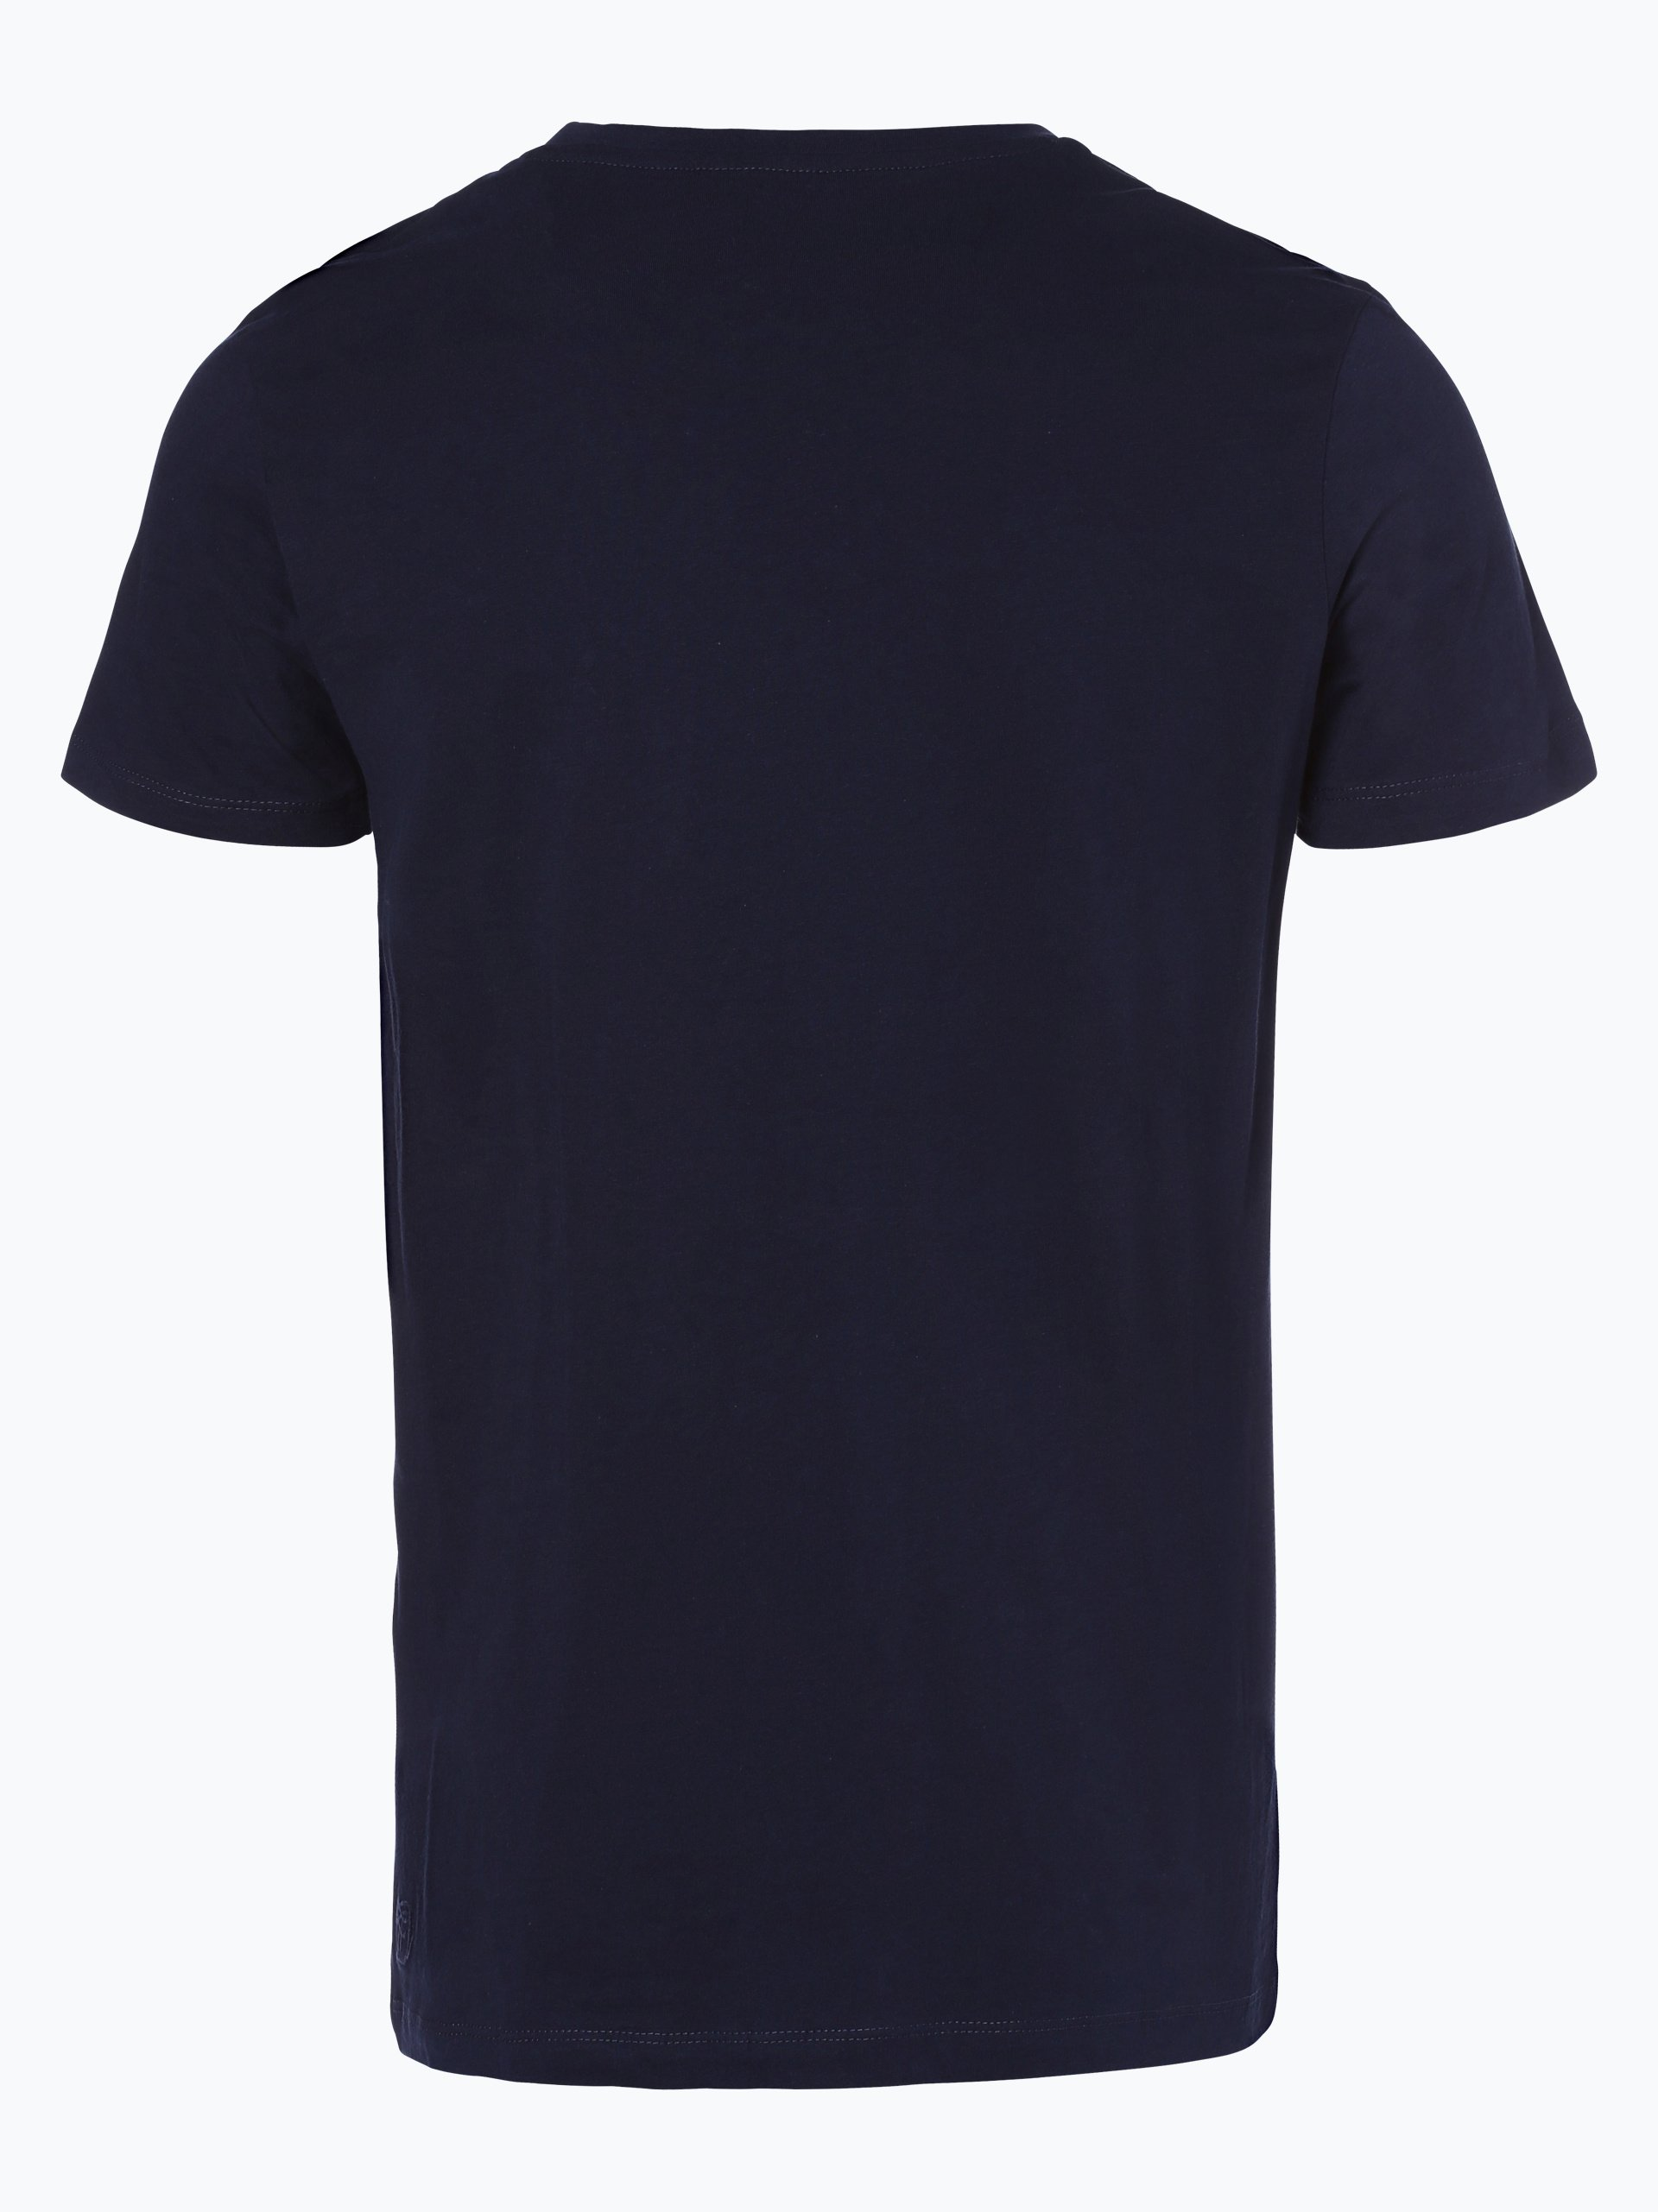 Tom Tailor Denim T-shirt męski